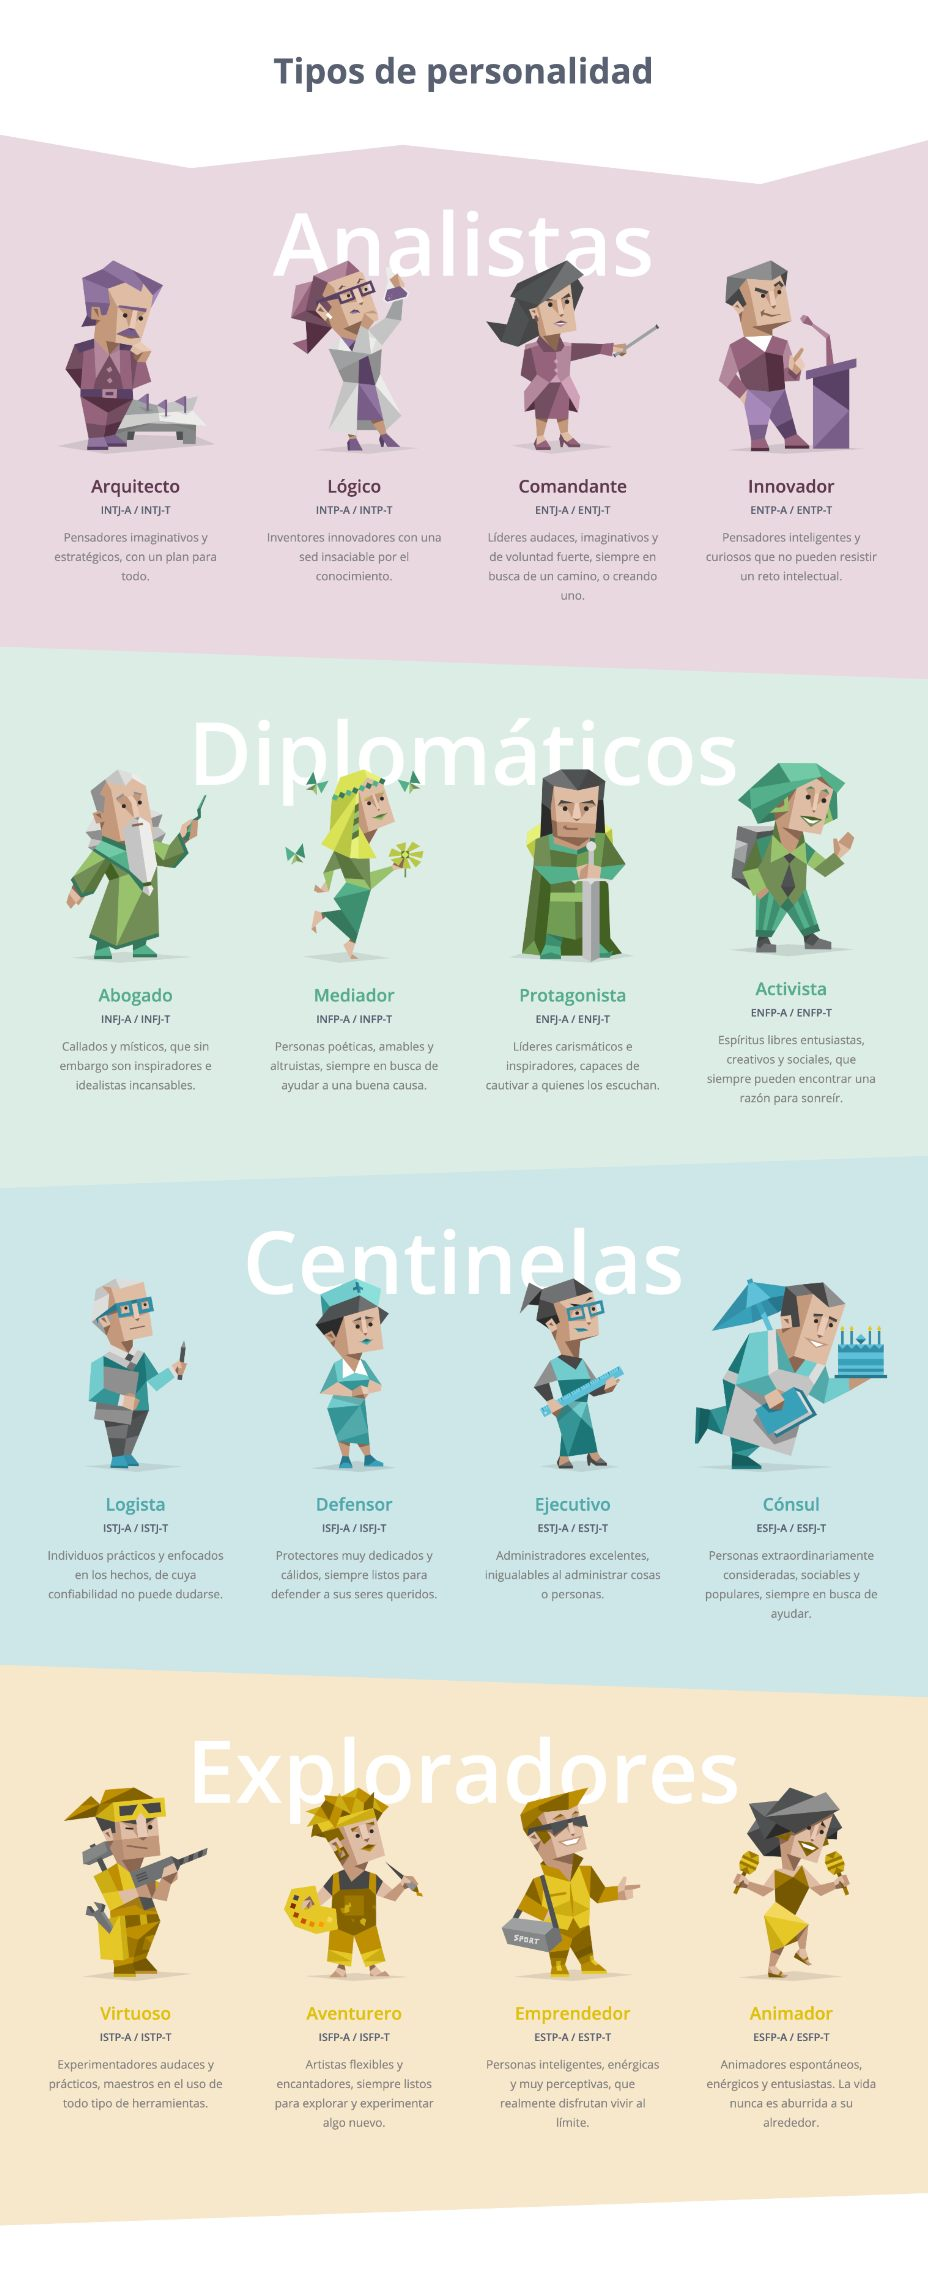 Personal Brand Diagnostics 3 The Test 16 Personalities